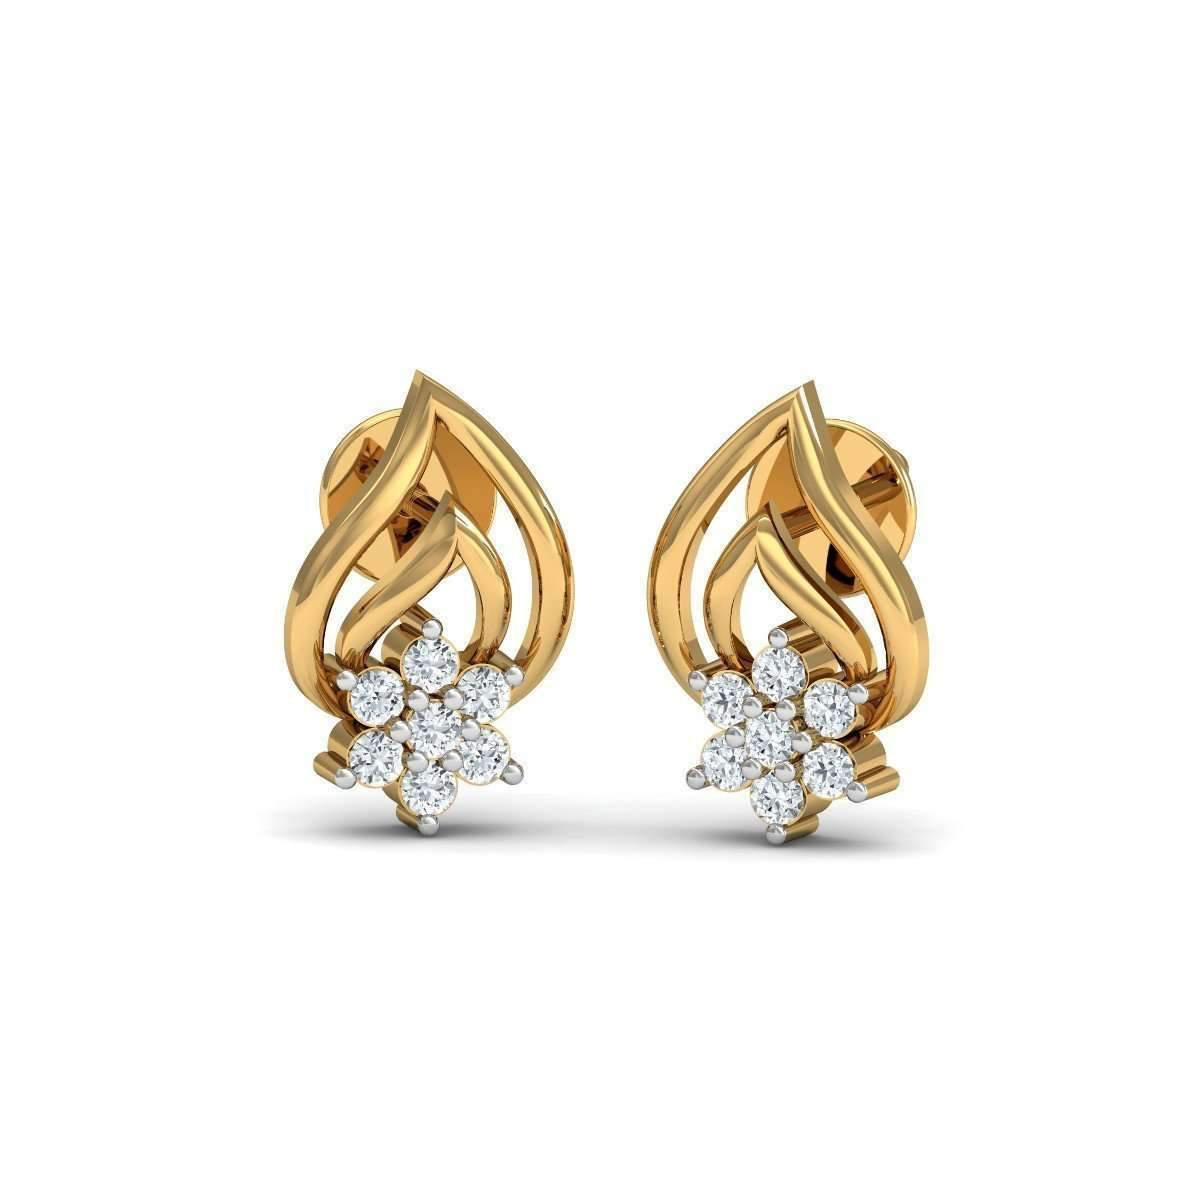 Diamoire Jewels Charming Diamond Stud Earrings in 18kt Yellow Gold wqn0uGZd